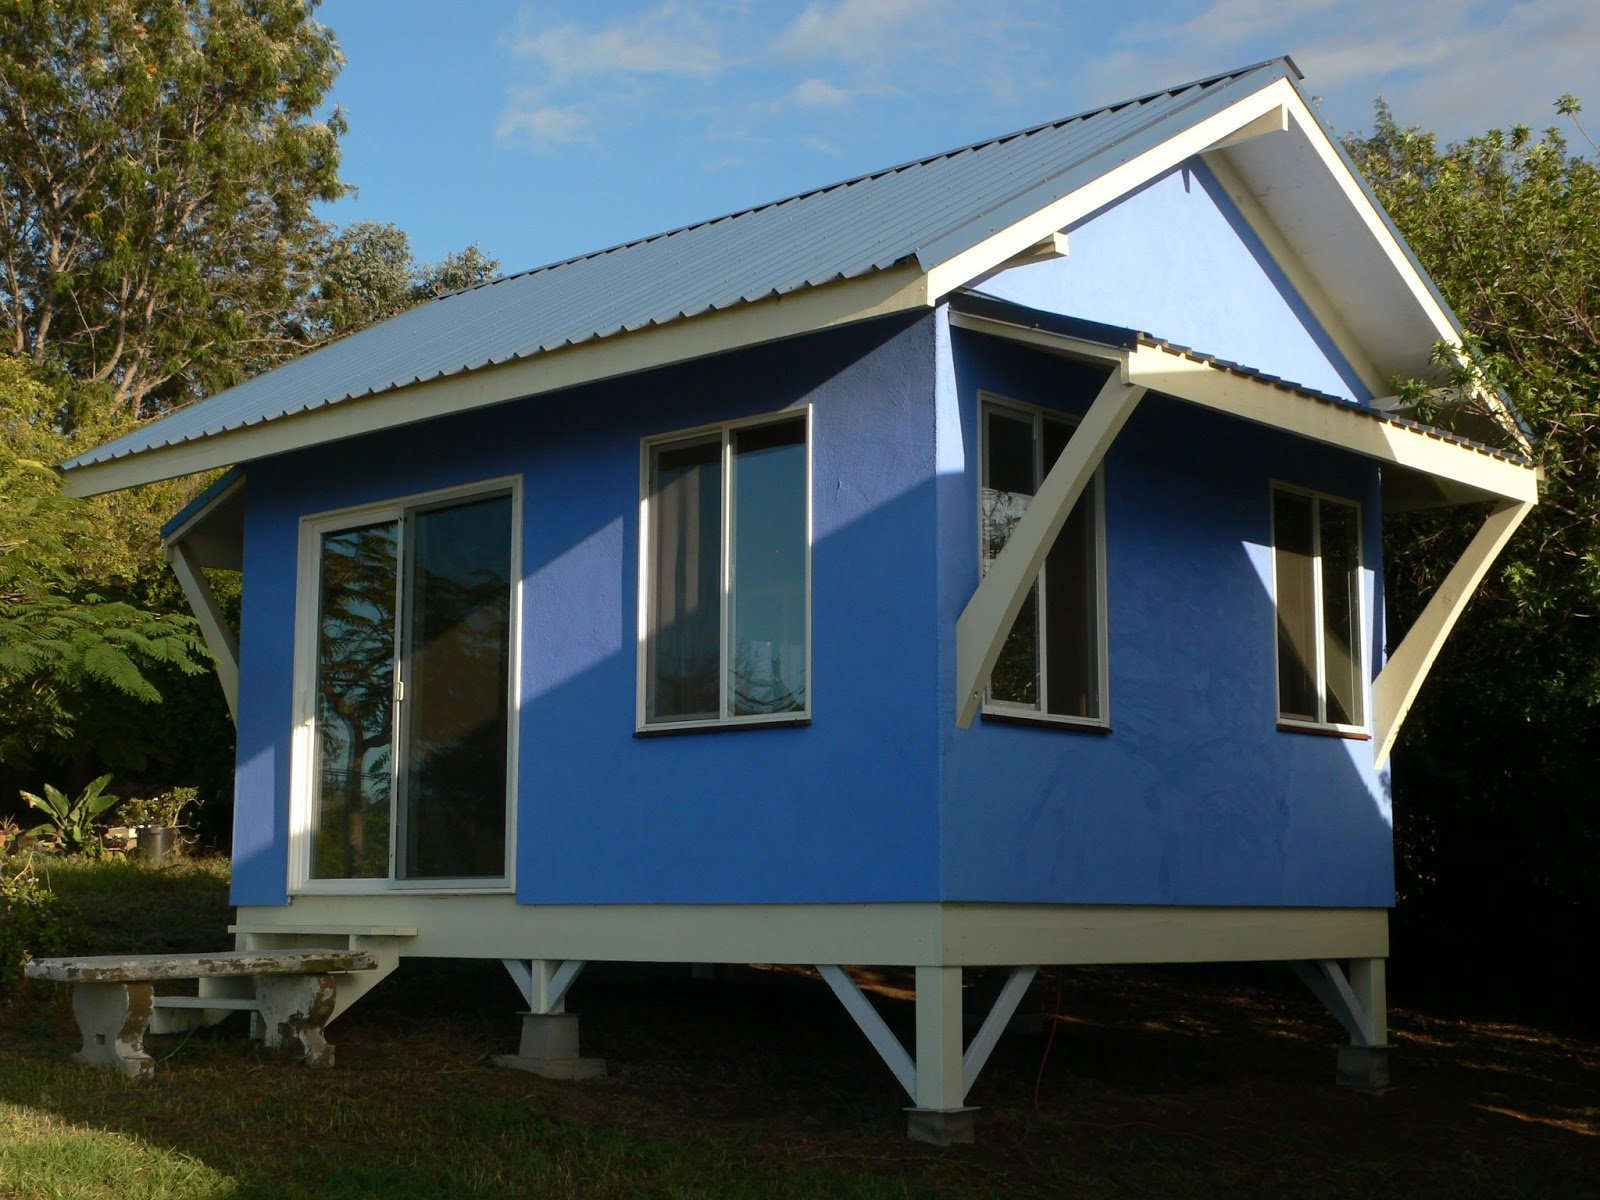 50 photos of small but beautiful and low cost houses that for Low cost building